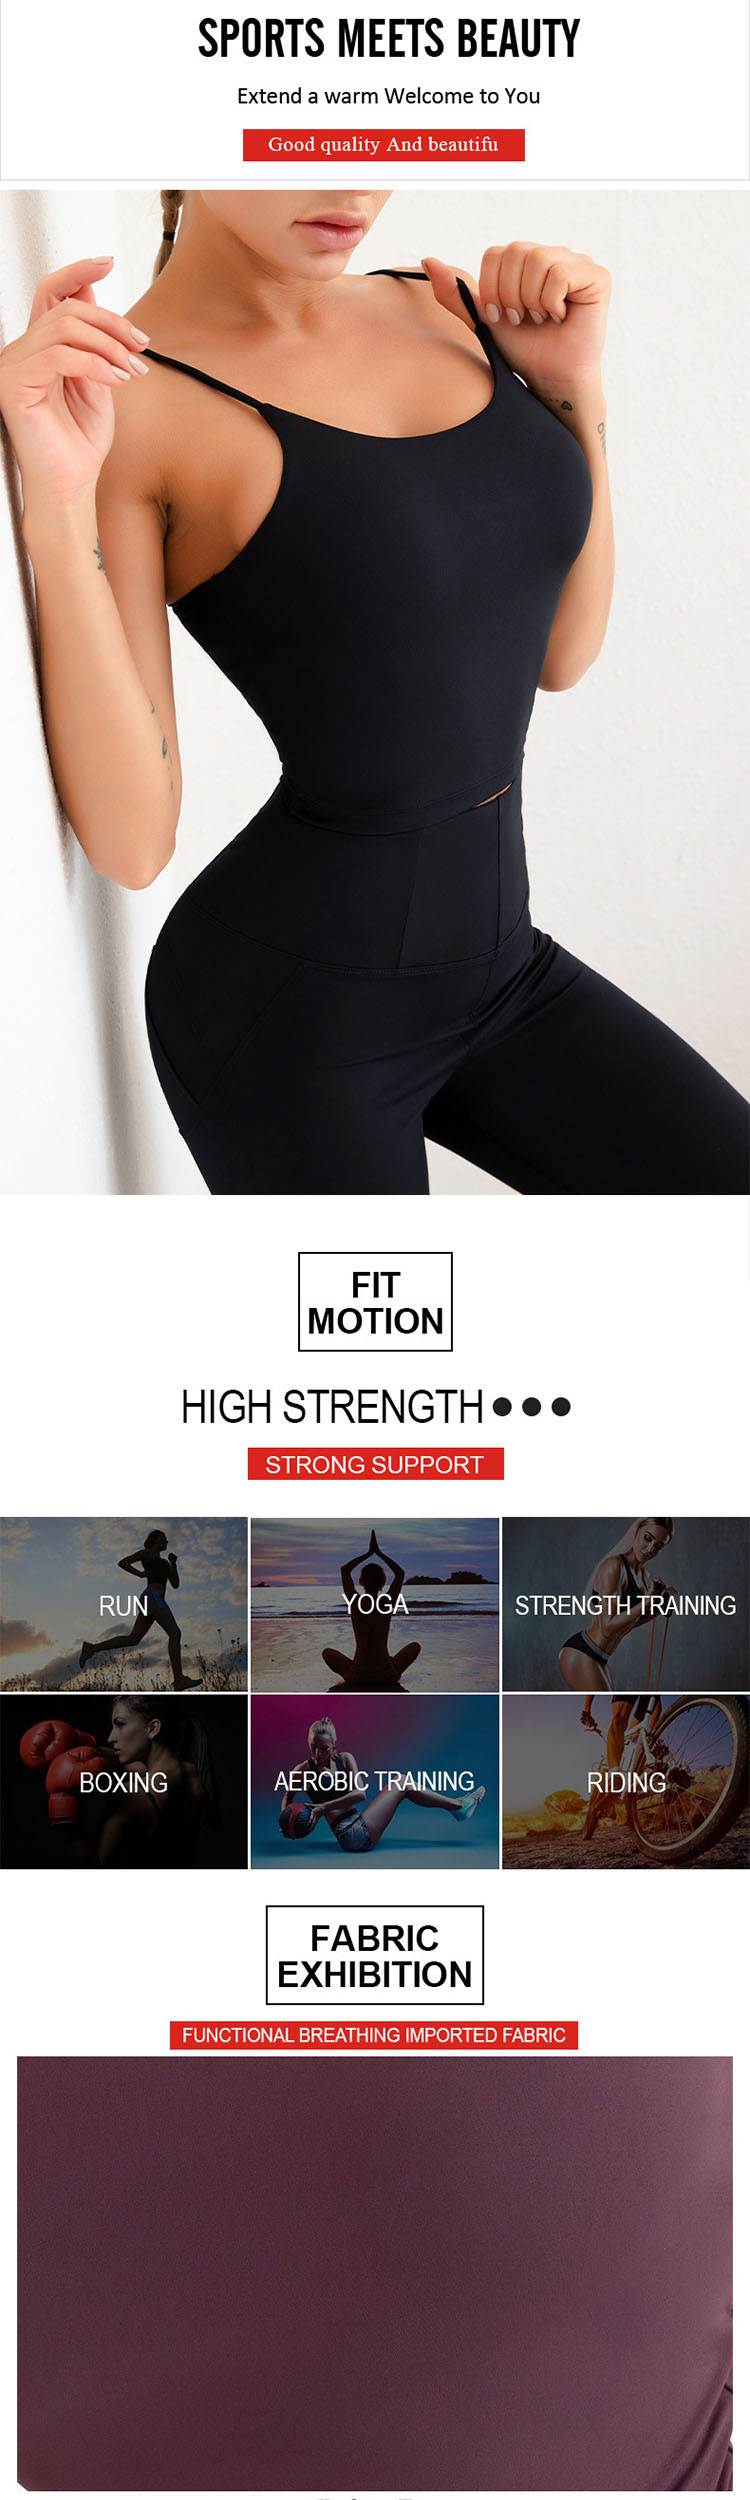 The use of structure is the top priority of tight gym pants design.